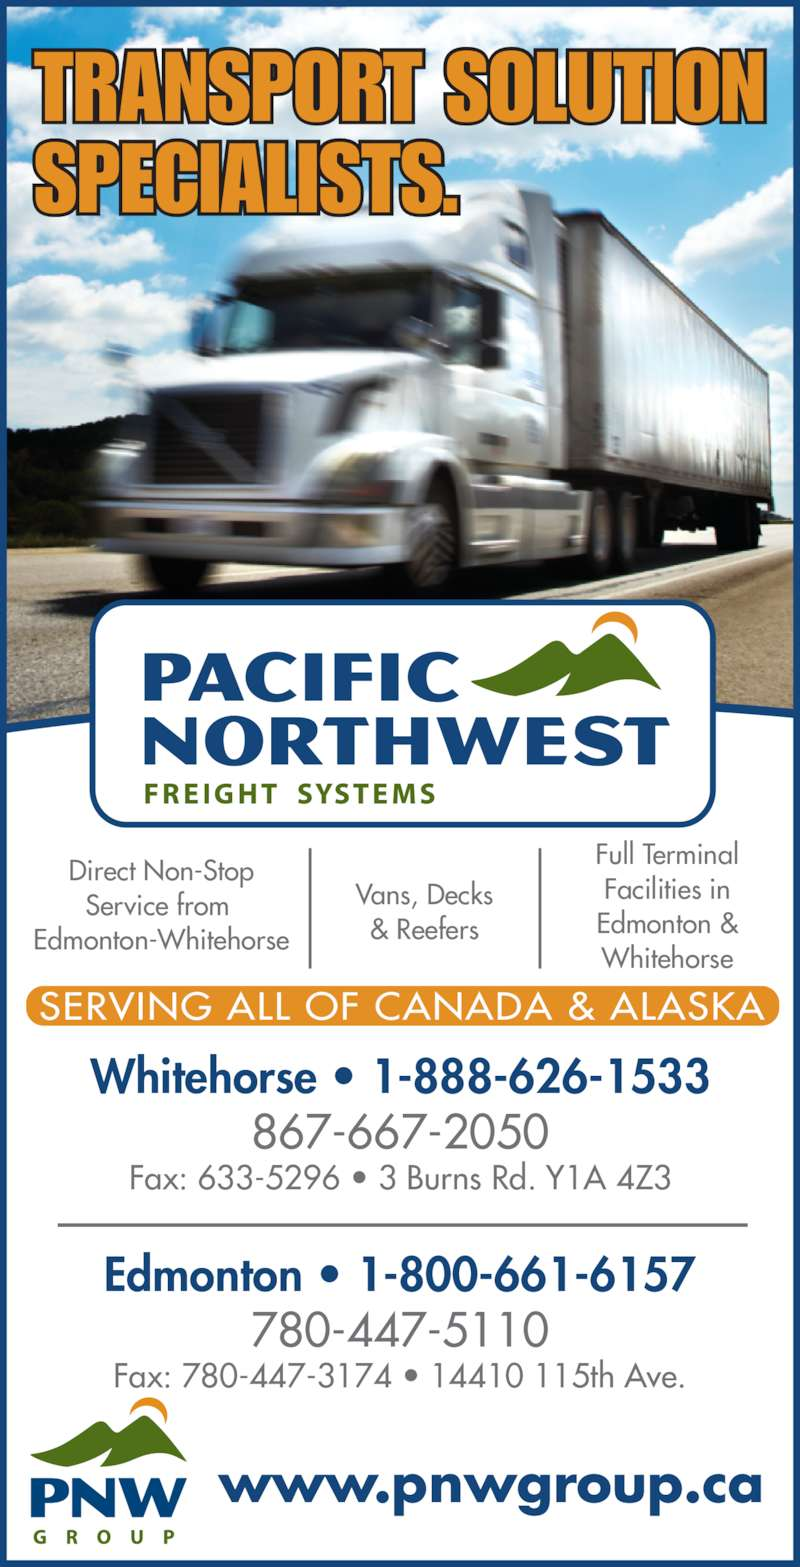 Pacific Northwest Freight Systems (867-667-2050) - Display Ad - Vans, Decks & Reefers Whitehorse • 1-888-626-1533 867-667-2050 Fax: 633-5296 • 3 Burns Rd. Y1A 4Z3 Edmonton • 1-800-661-6157 780-447-5110 Fax: 780-447-3174 • 14410 115th Ave. www.pnwgroup.ca TRANSPORT SOLUTION SPECIALISTS. SERVING ALL OF CANADA & ALASKA Full Terminal Facilities in Edmonton & Whitehorse Direct Non-Stop Edmonton-Whitehorse Service from